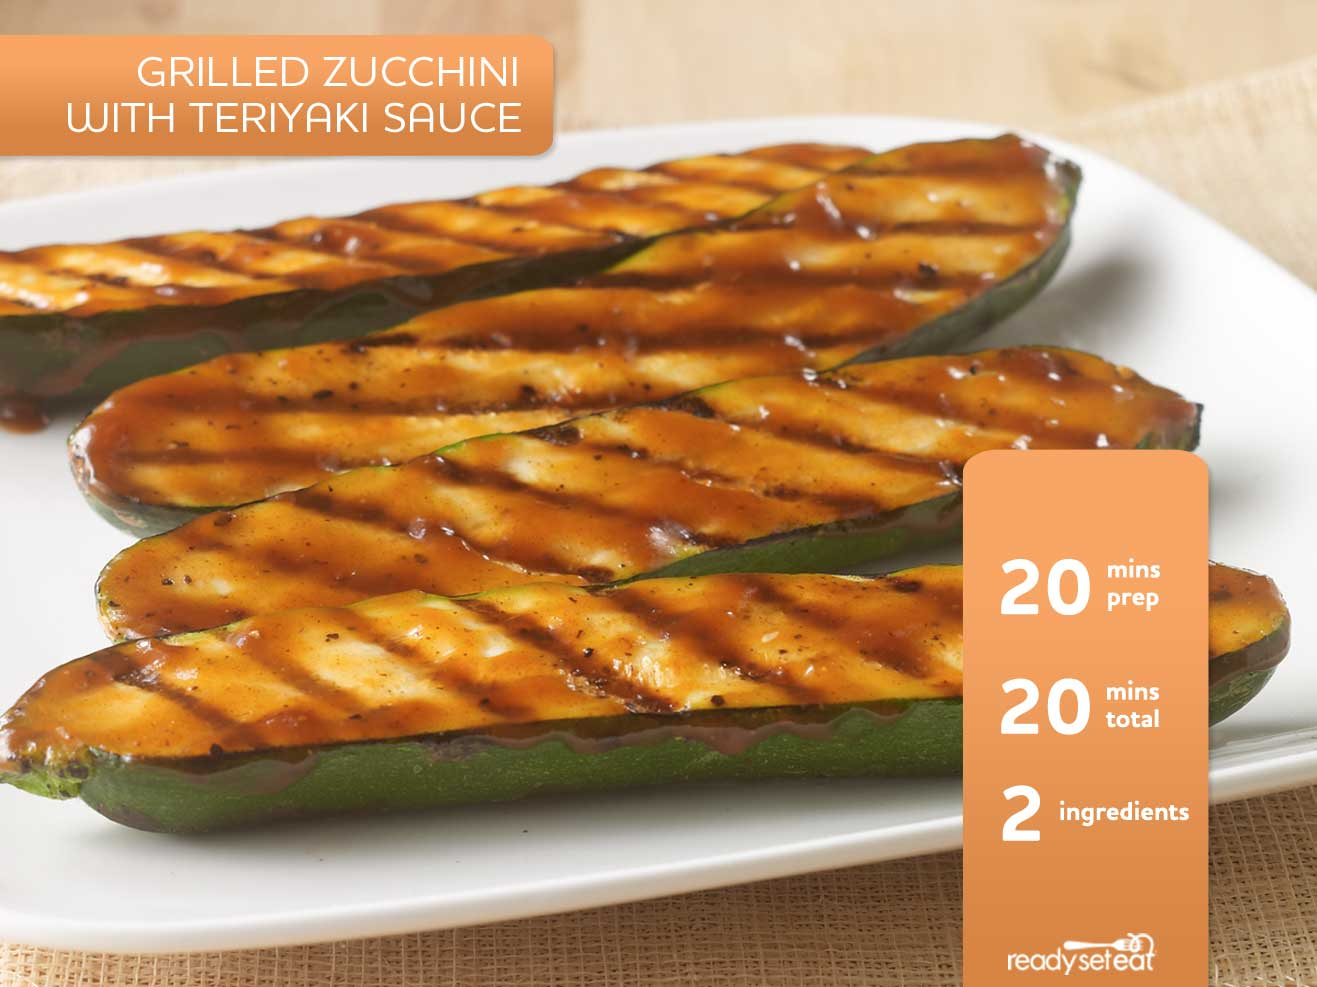 Grilled Zucchini with Teriyaki Sauce